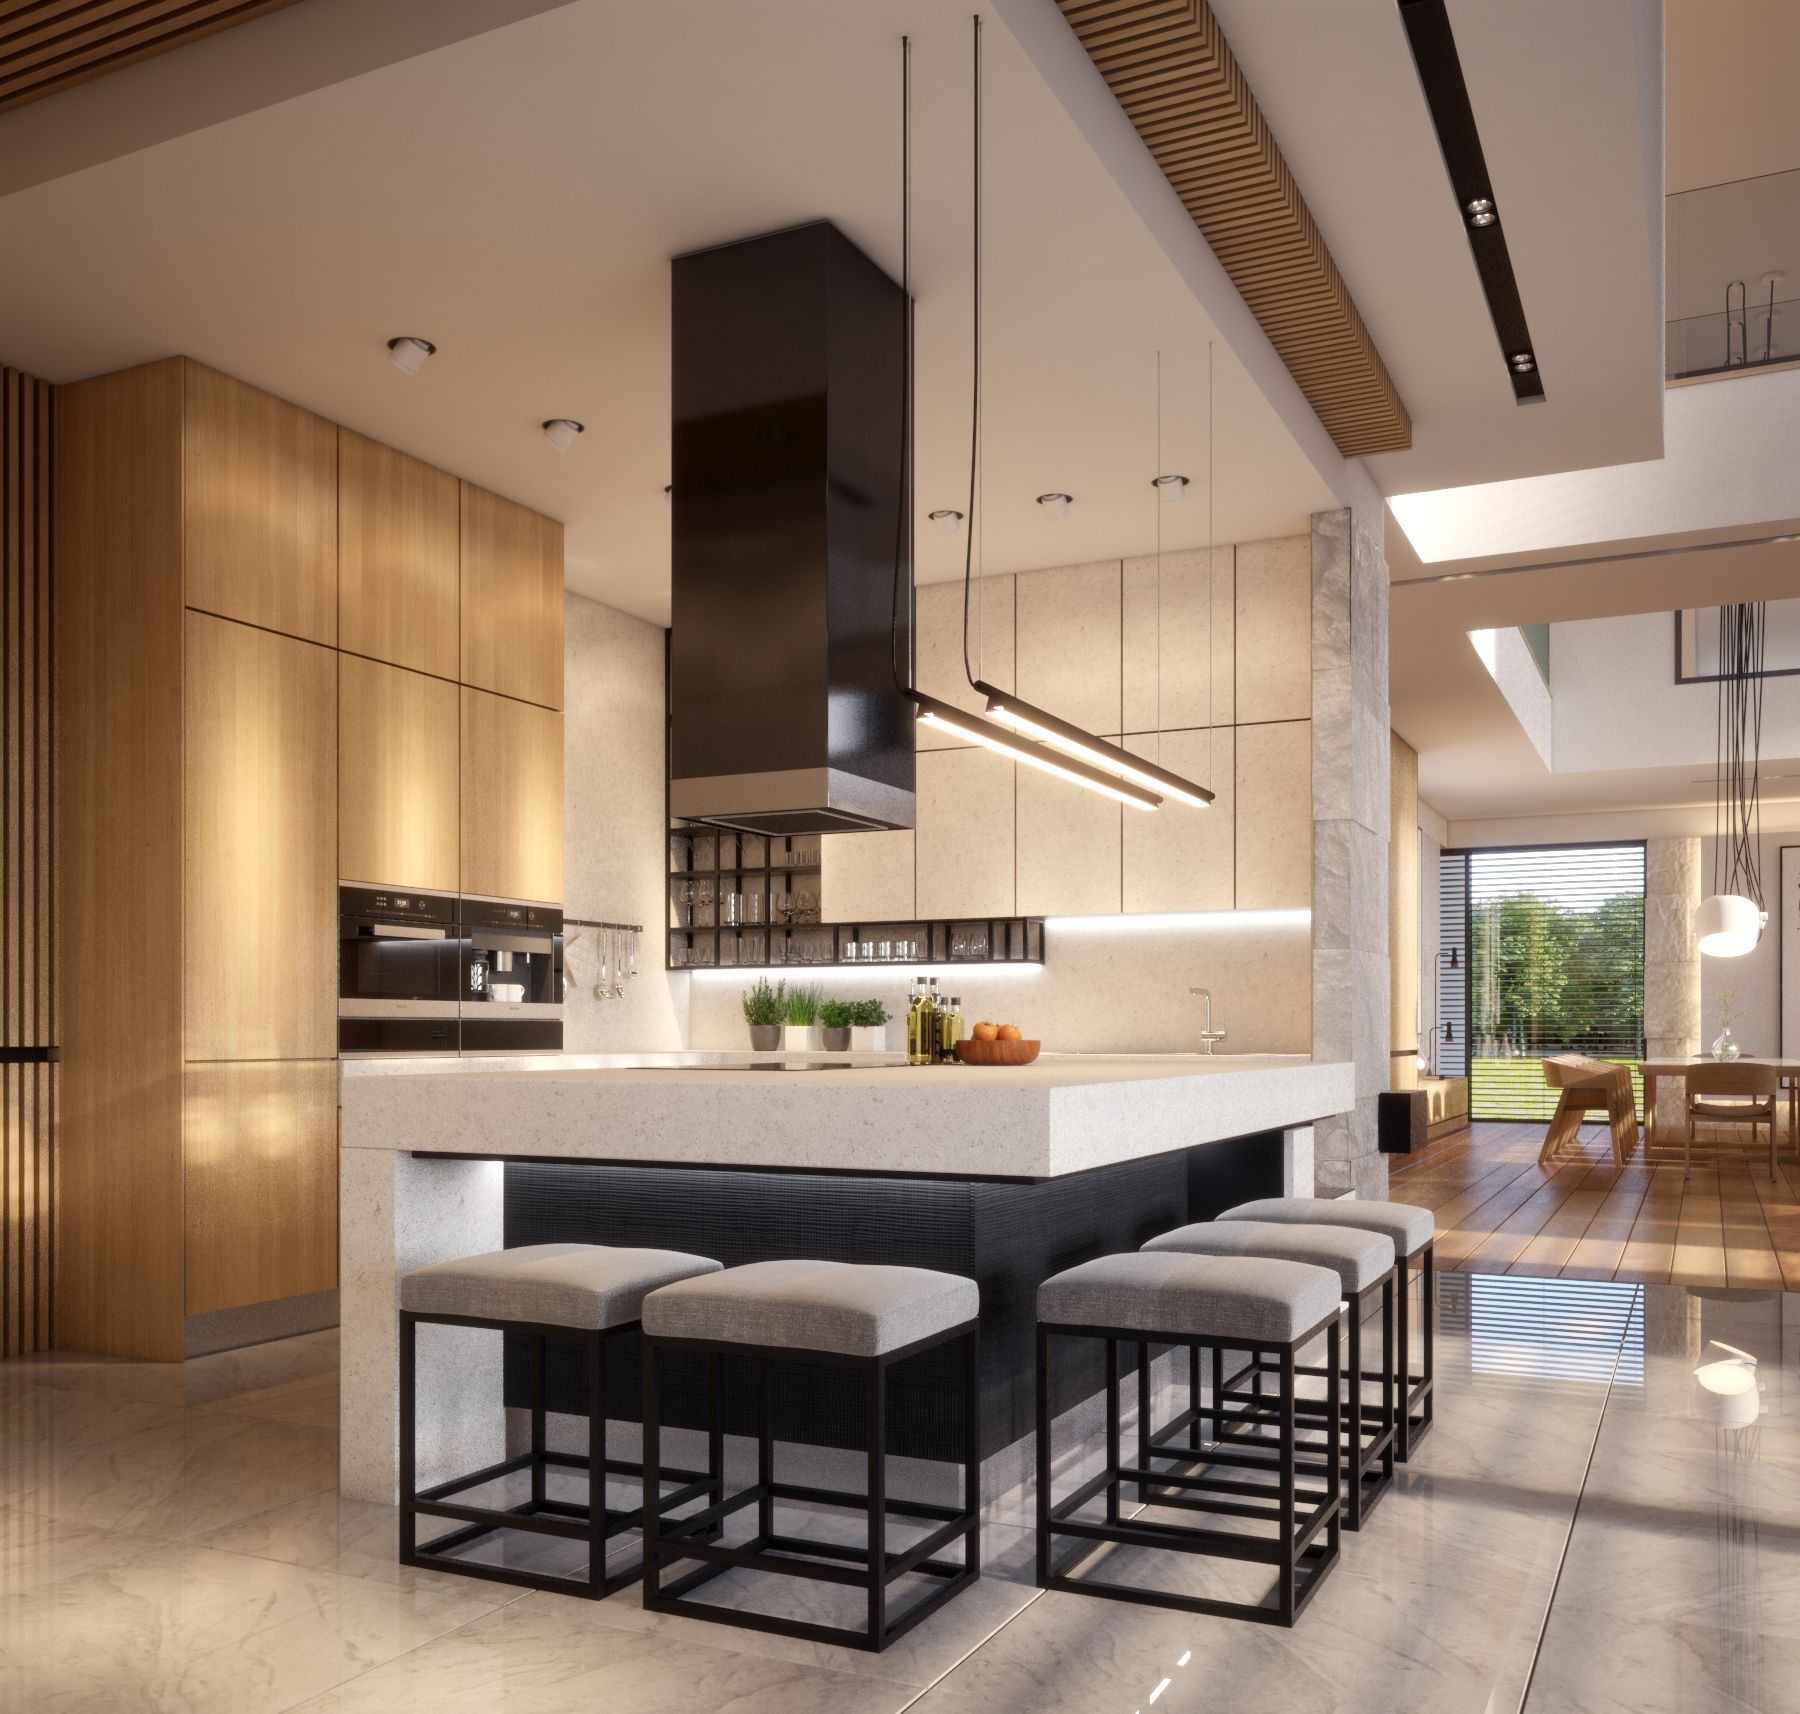 Warm Wooden Modern Interior Design Home About Surface 700m2 My Concept Of Interior Design For The Invest With Images Interior Design Kitchen Small Modern Interior Decor